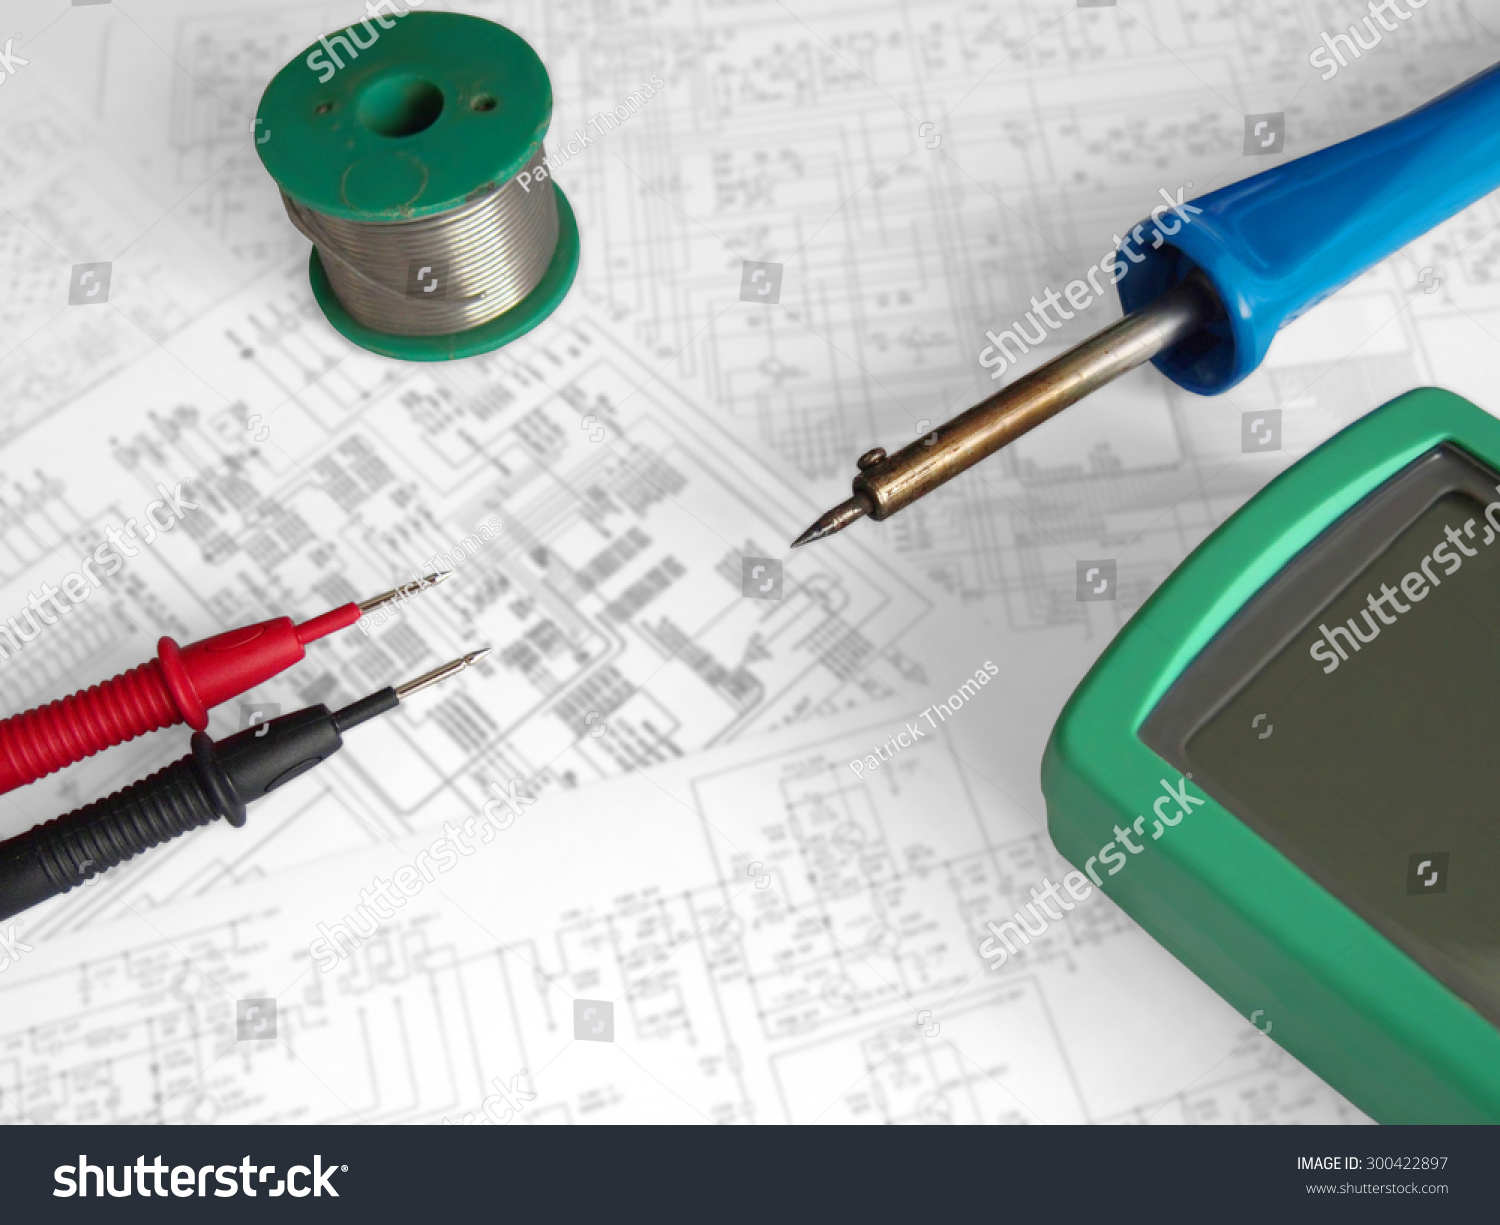 Electronics Electrician Engineer Wiring Diagrams Tools Stock Photo Edit Now 300422897